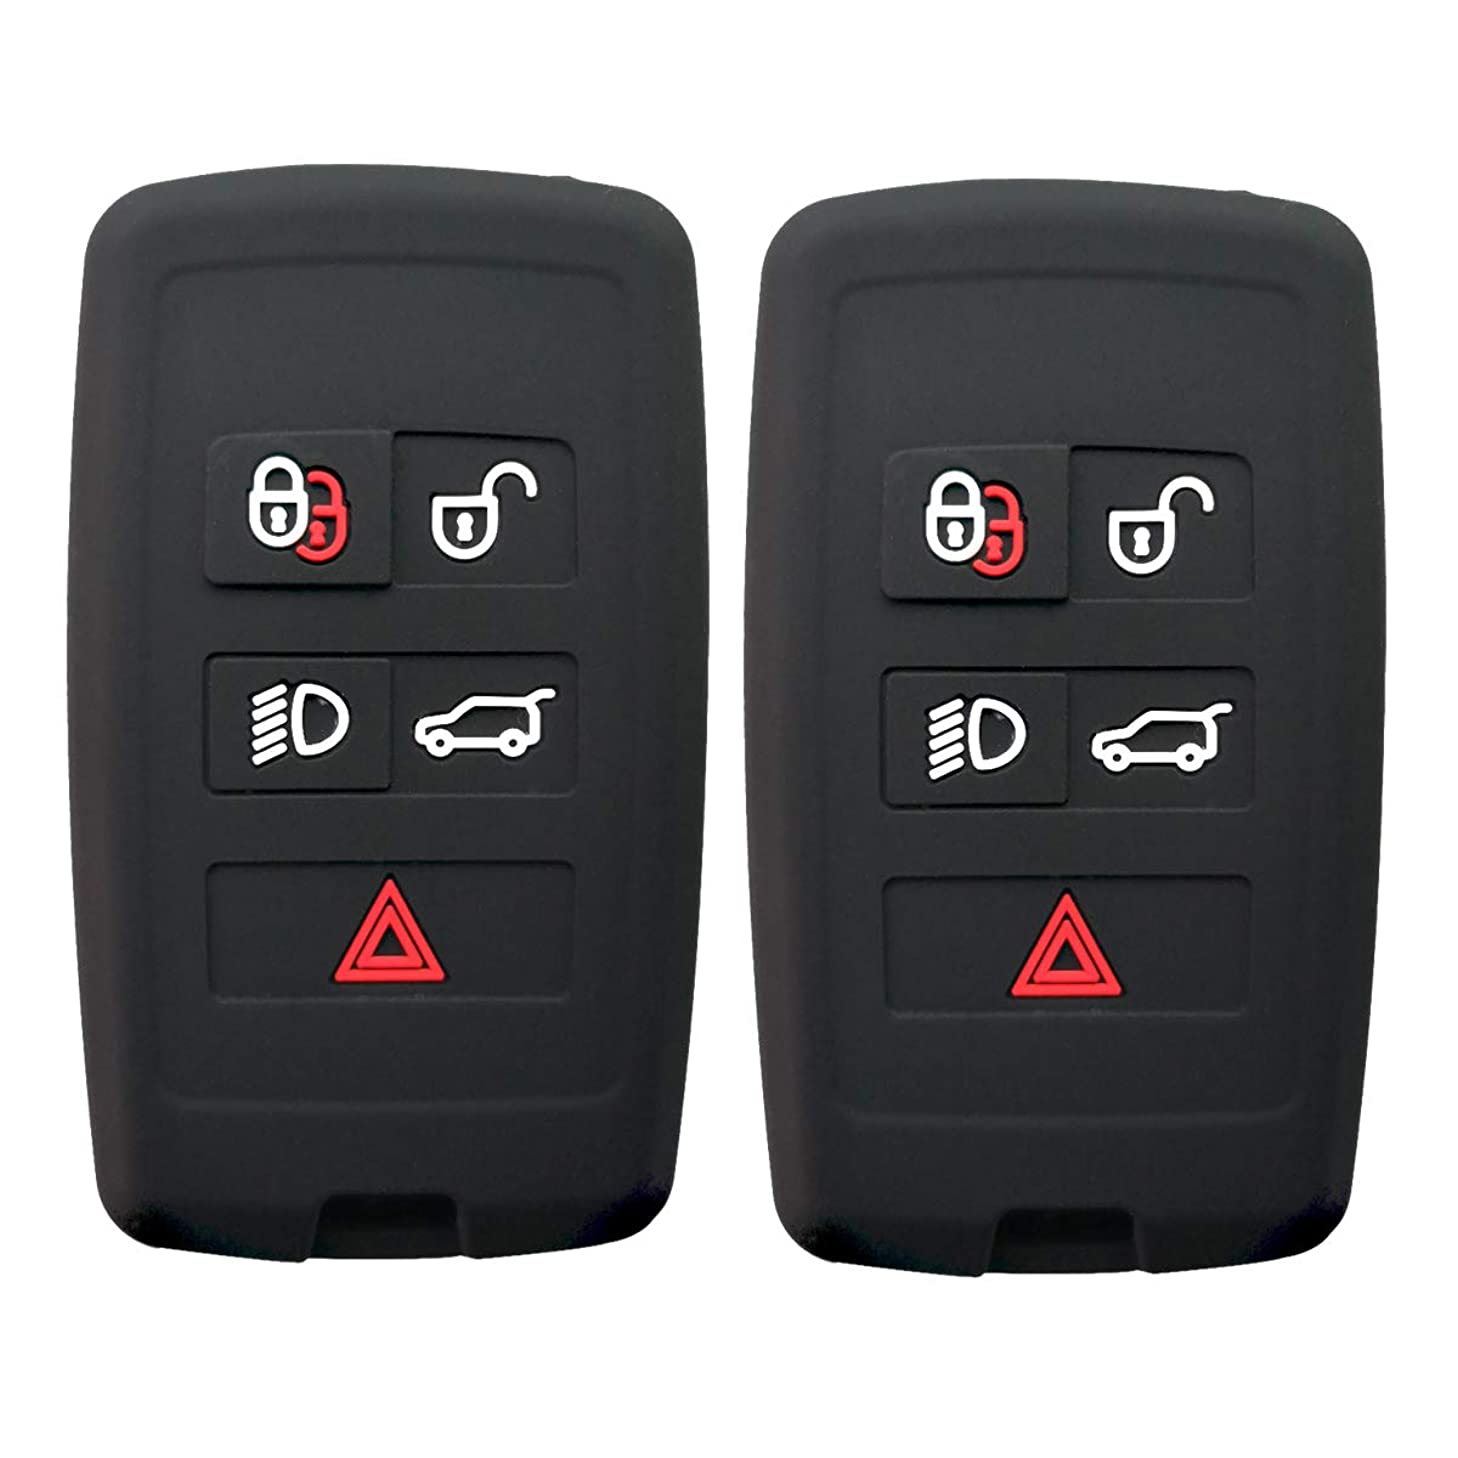 Coolbestda Compatible for Land Rover Range Rover Sport Evoque Velar Discovery 5 Silicone 5buttons Key Fob Remote Case Protector Holder Skin Jacket Accessories 2Pcs